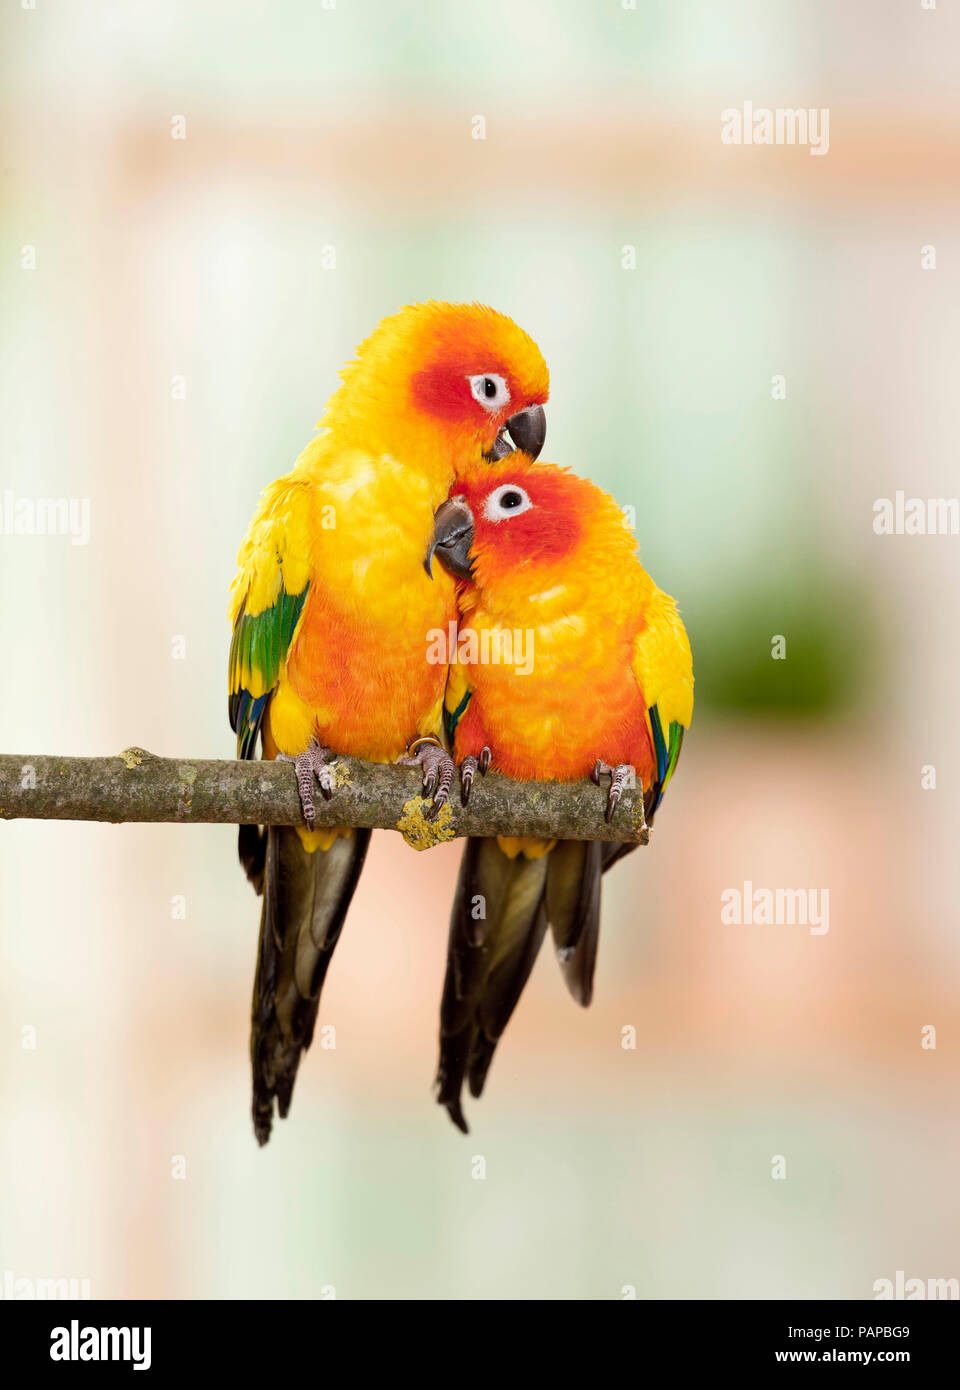 Sun Conure (Aratinga solstitialis). Two adults perched on a twig, smooching. Germany - Stock Image